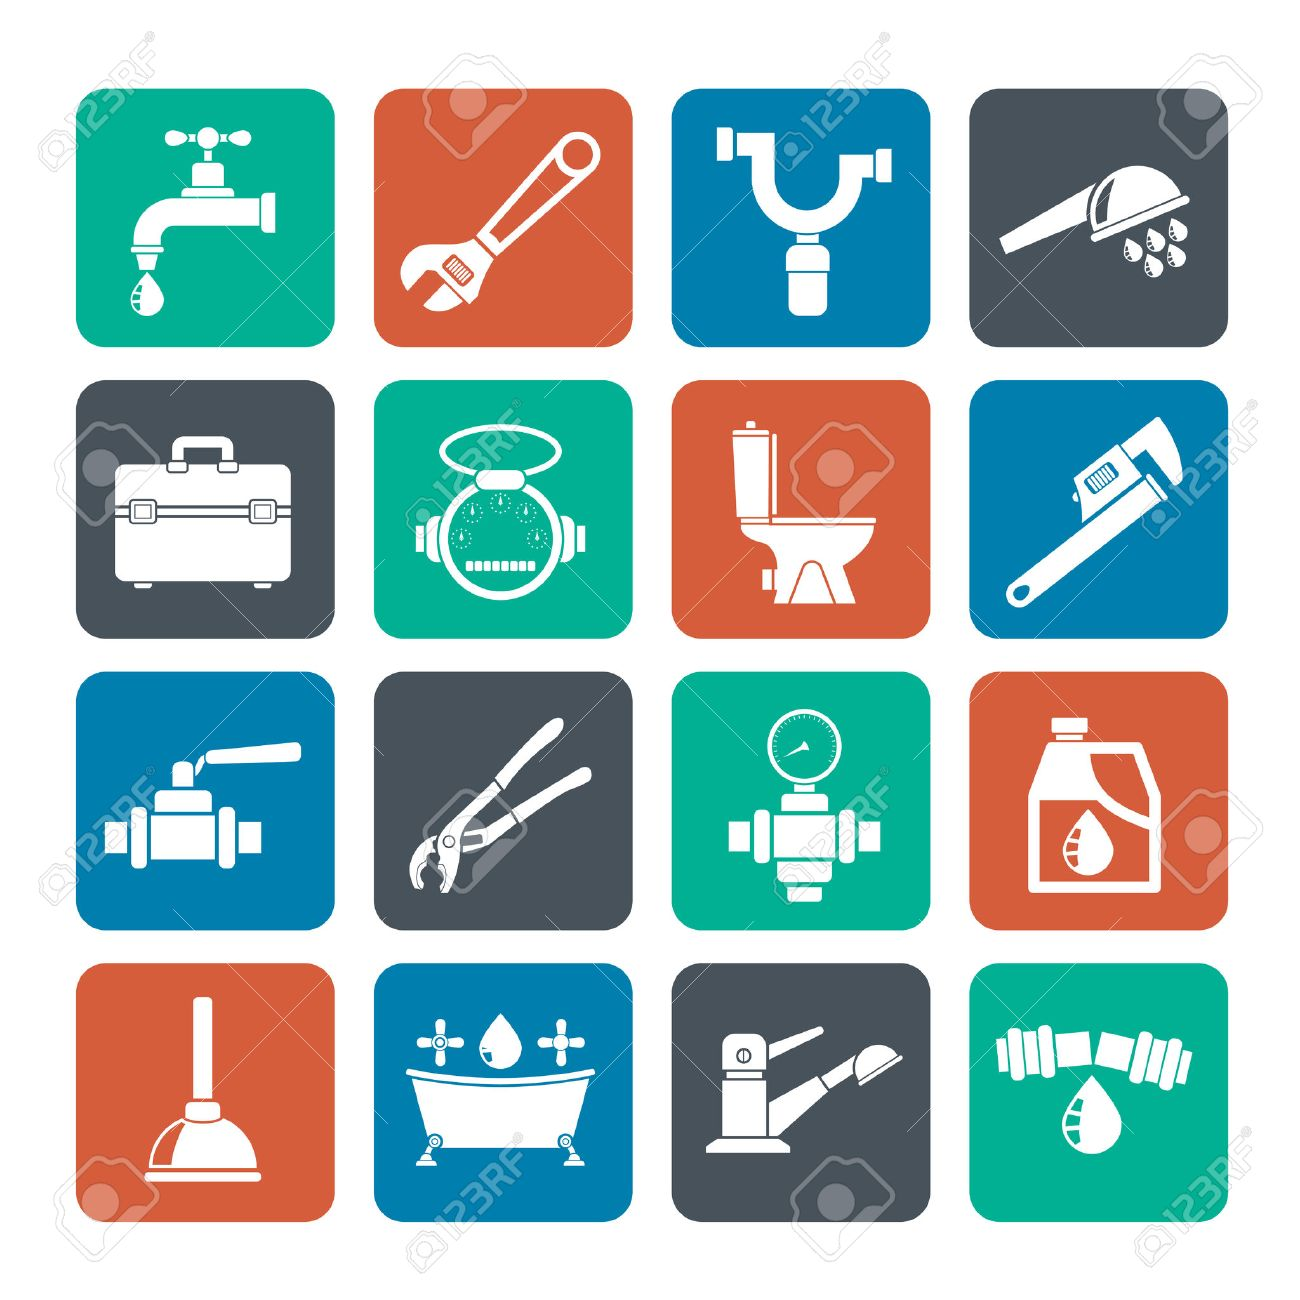 Silhouette plumbing objects and tools icons - vector icon set - 32210499